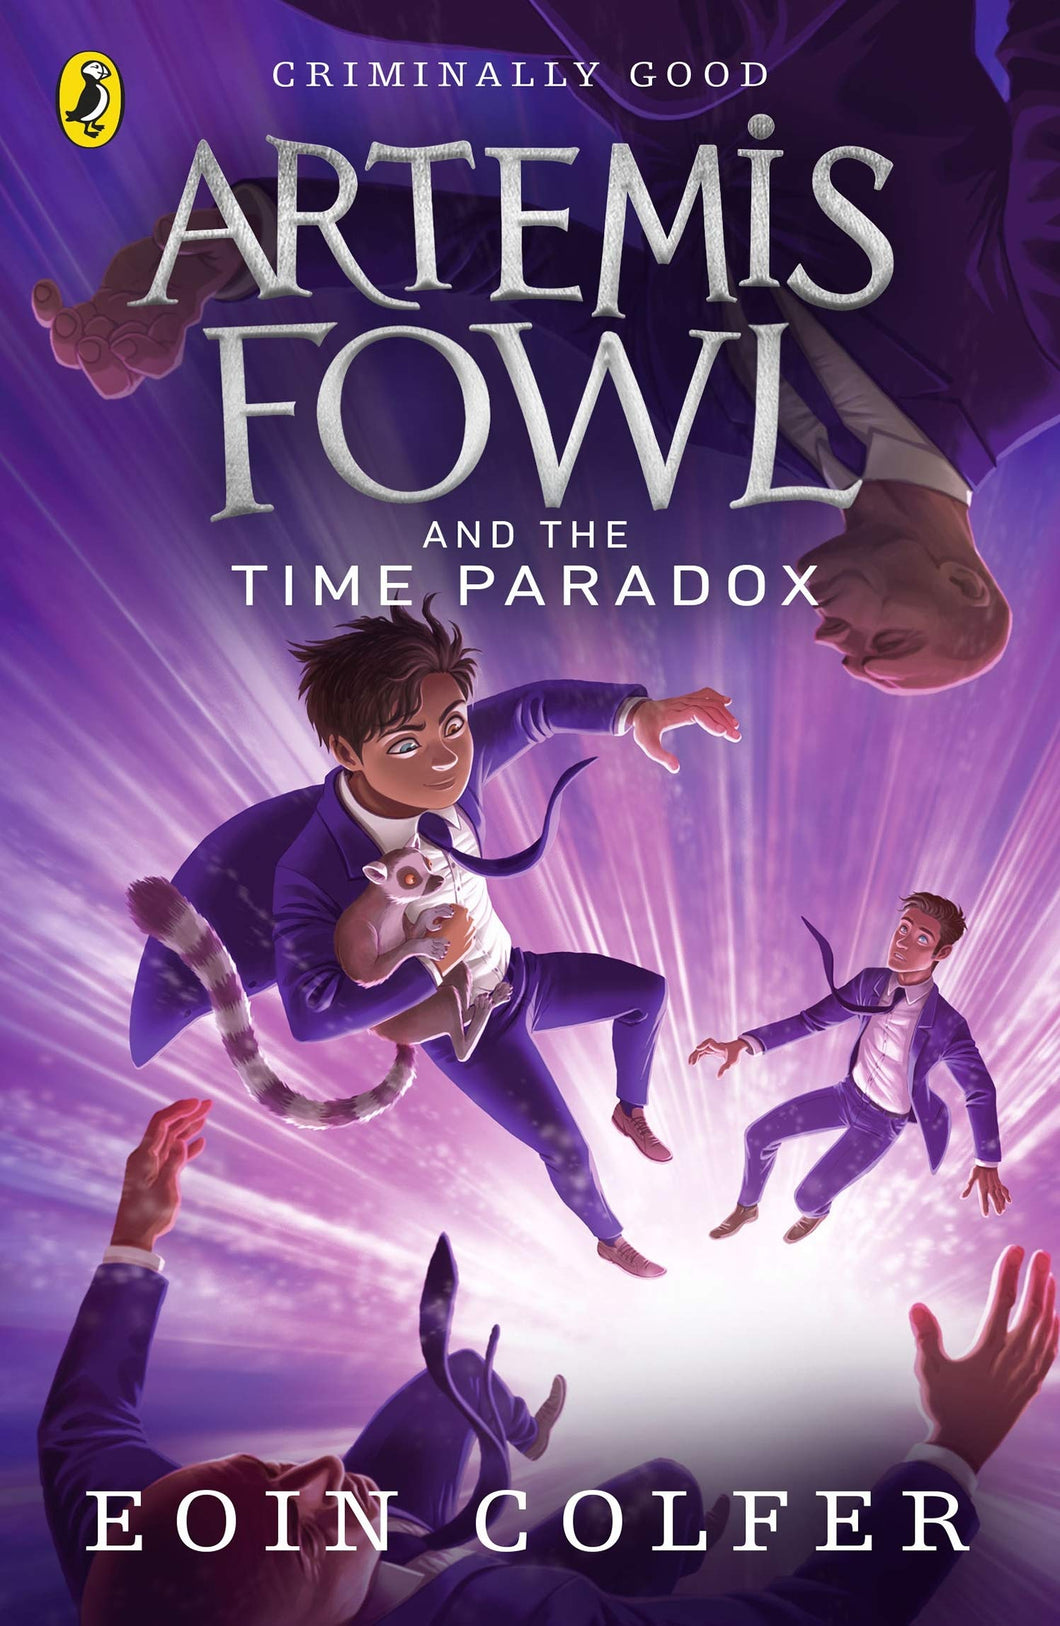 Artemis Fowl and the Time Paradox (#6)